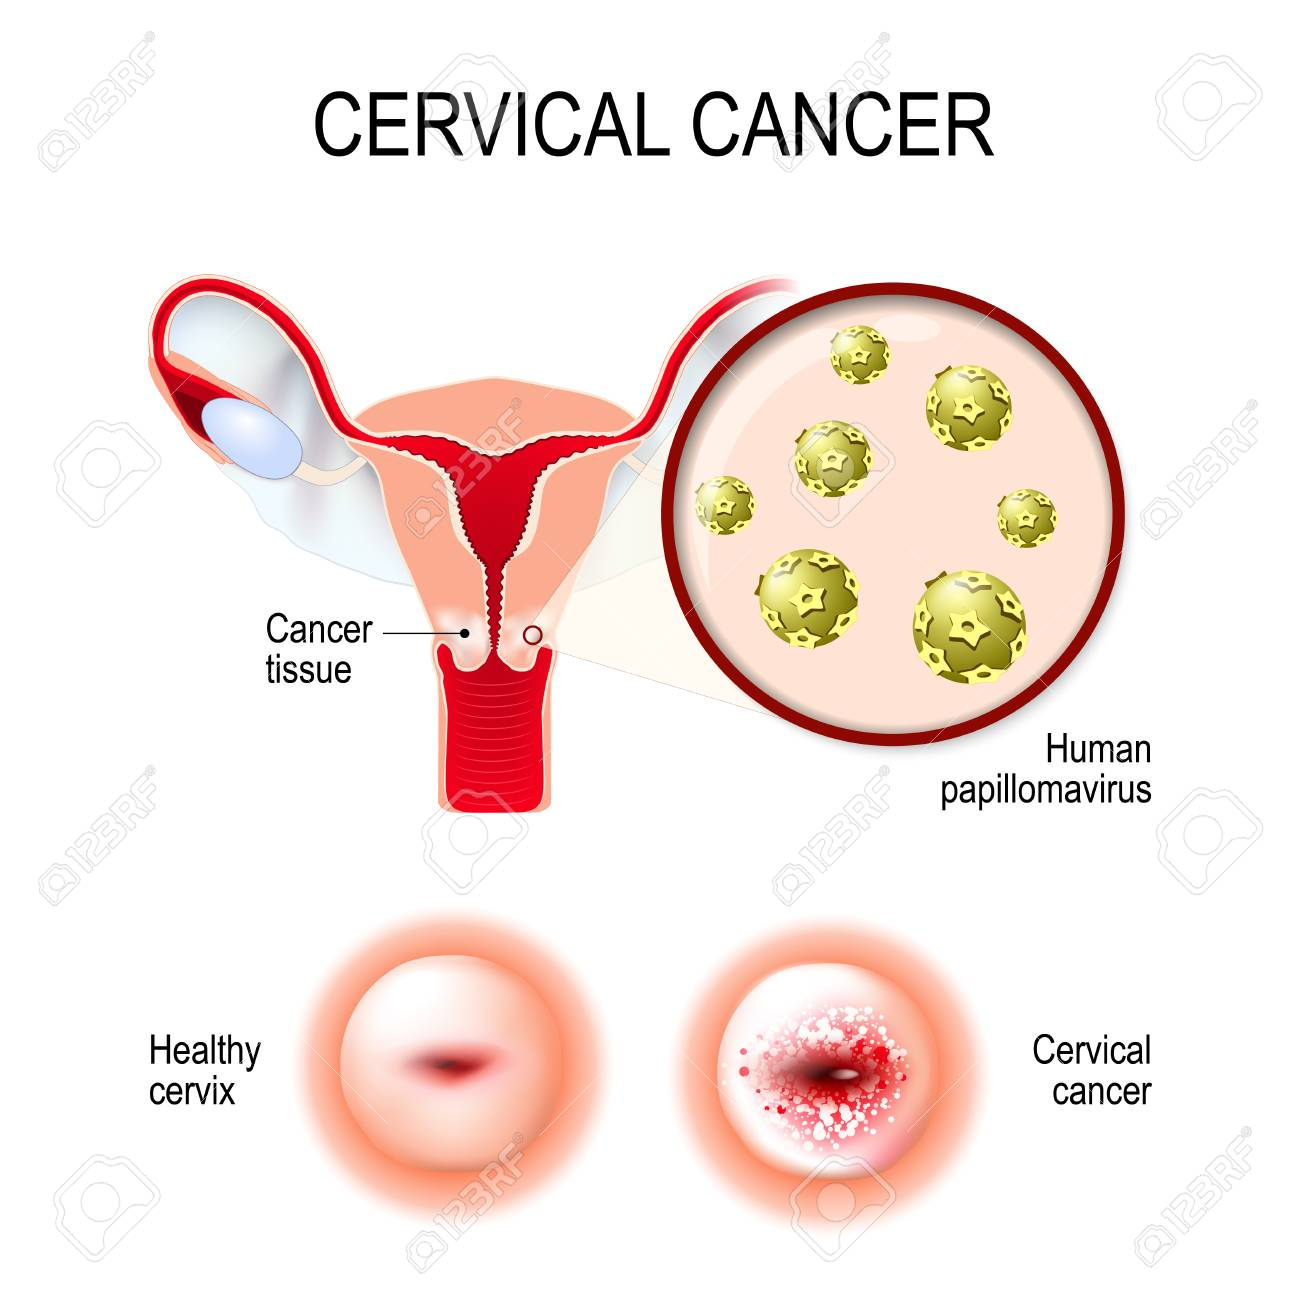 human papillomavirus infection for cervical cancer o detoxifiere corecta a organismului